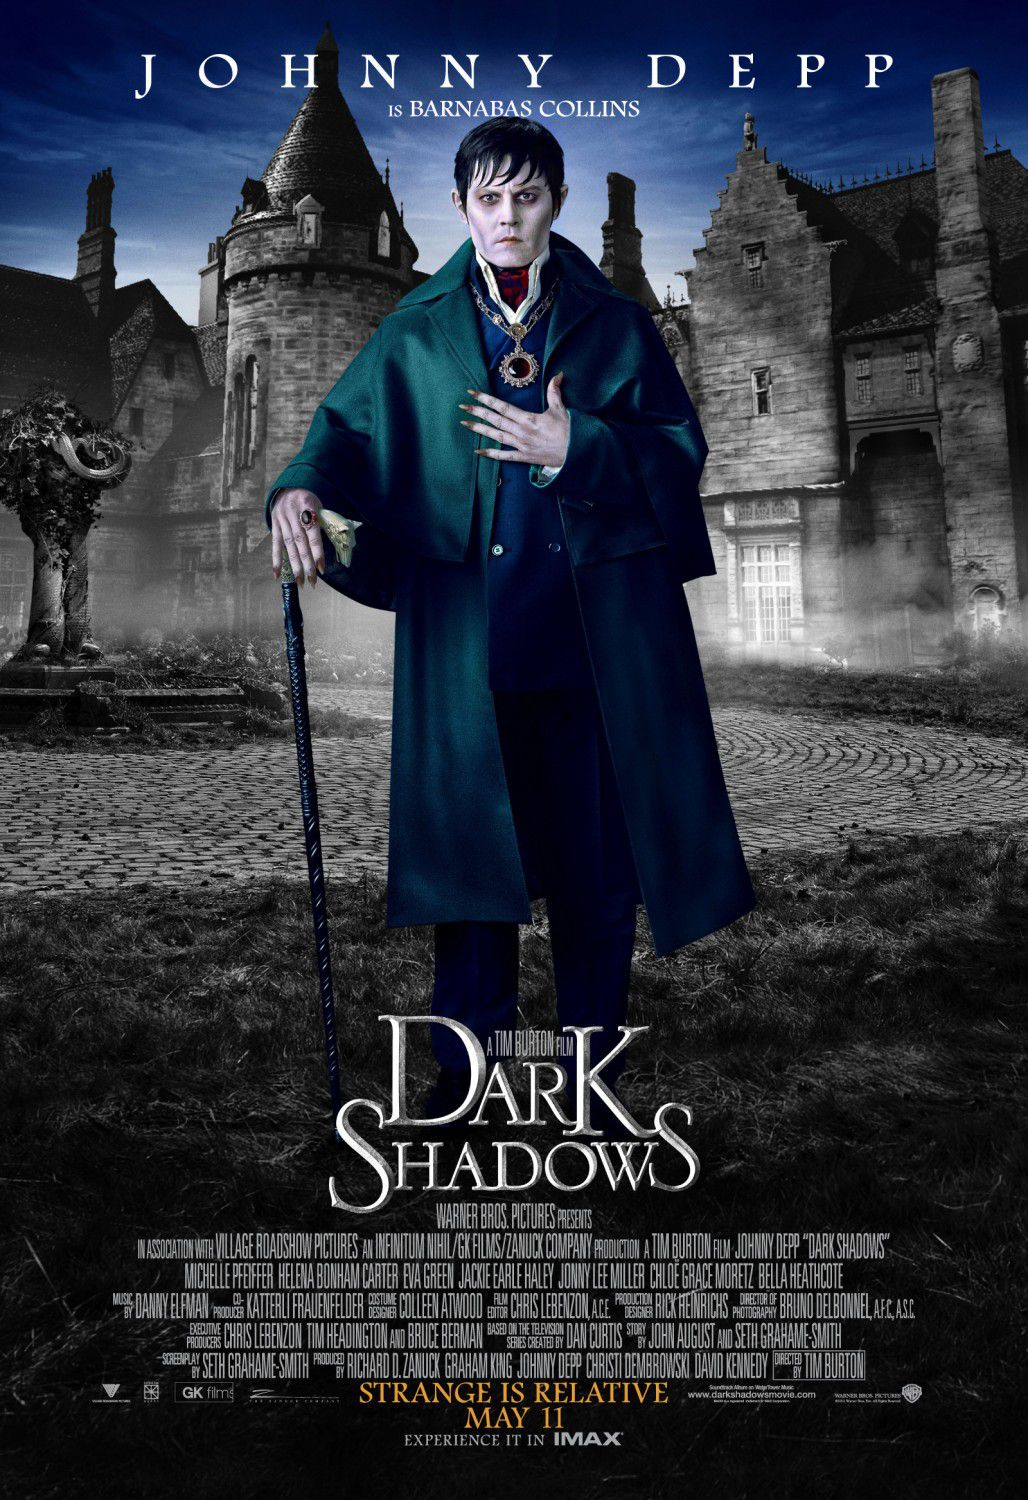 Johnny Depp is Barnabas Collins